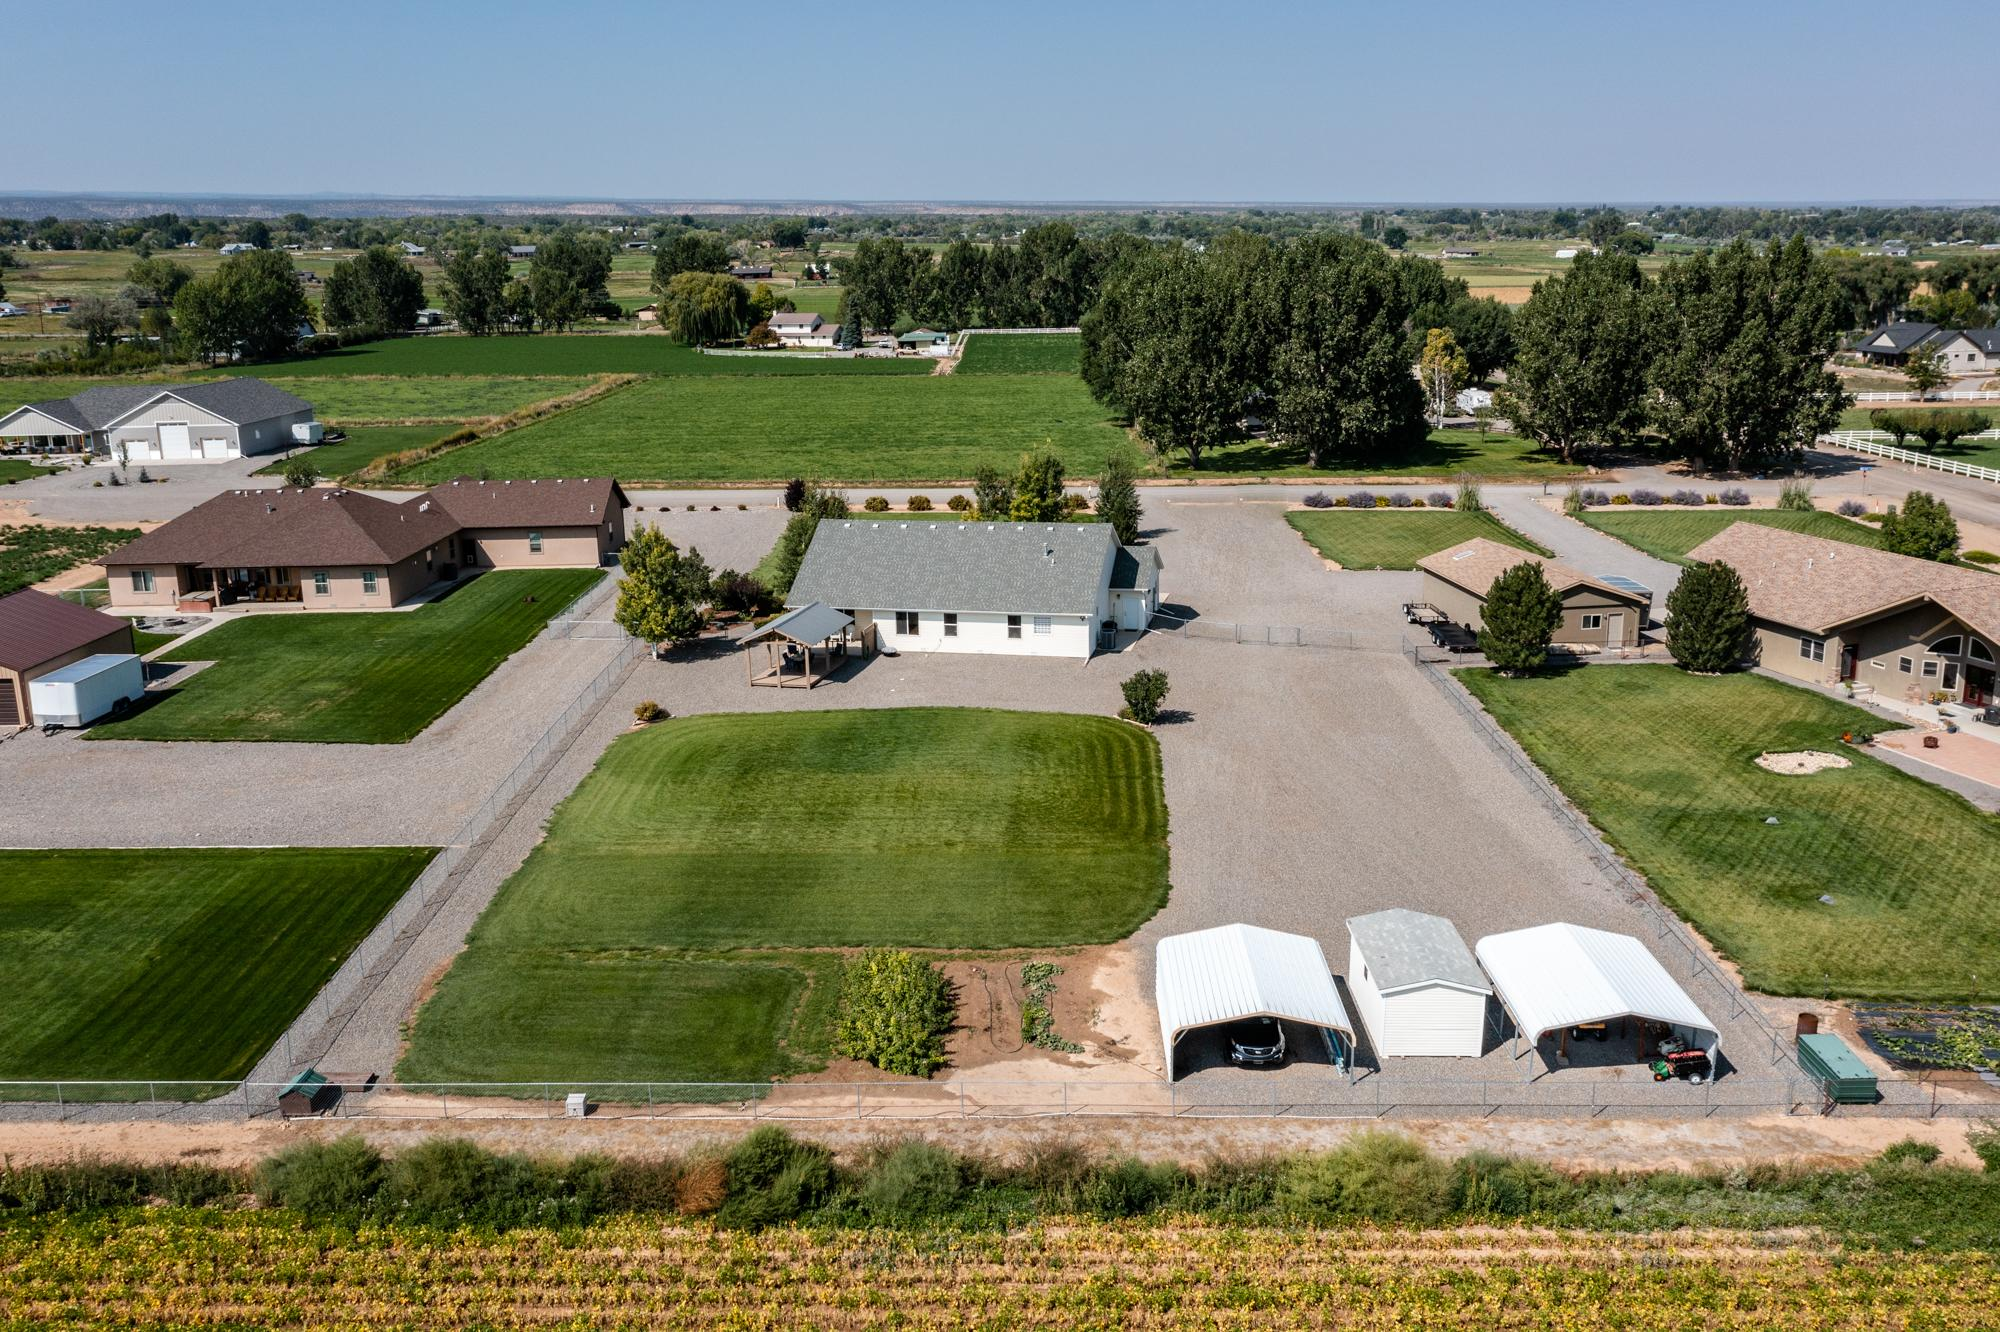 Aerial View Rear of Property - 15552 6120 Rd Montrose, CO 81403 - Atha Team Country Real Estate